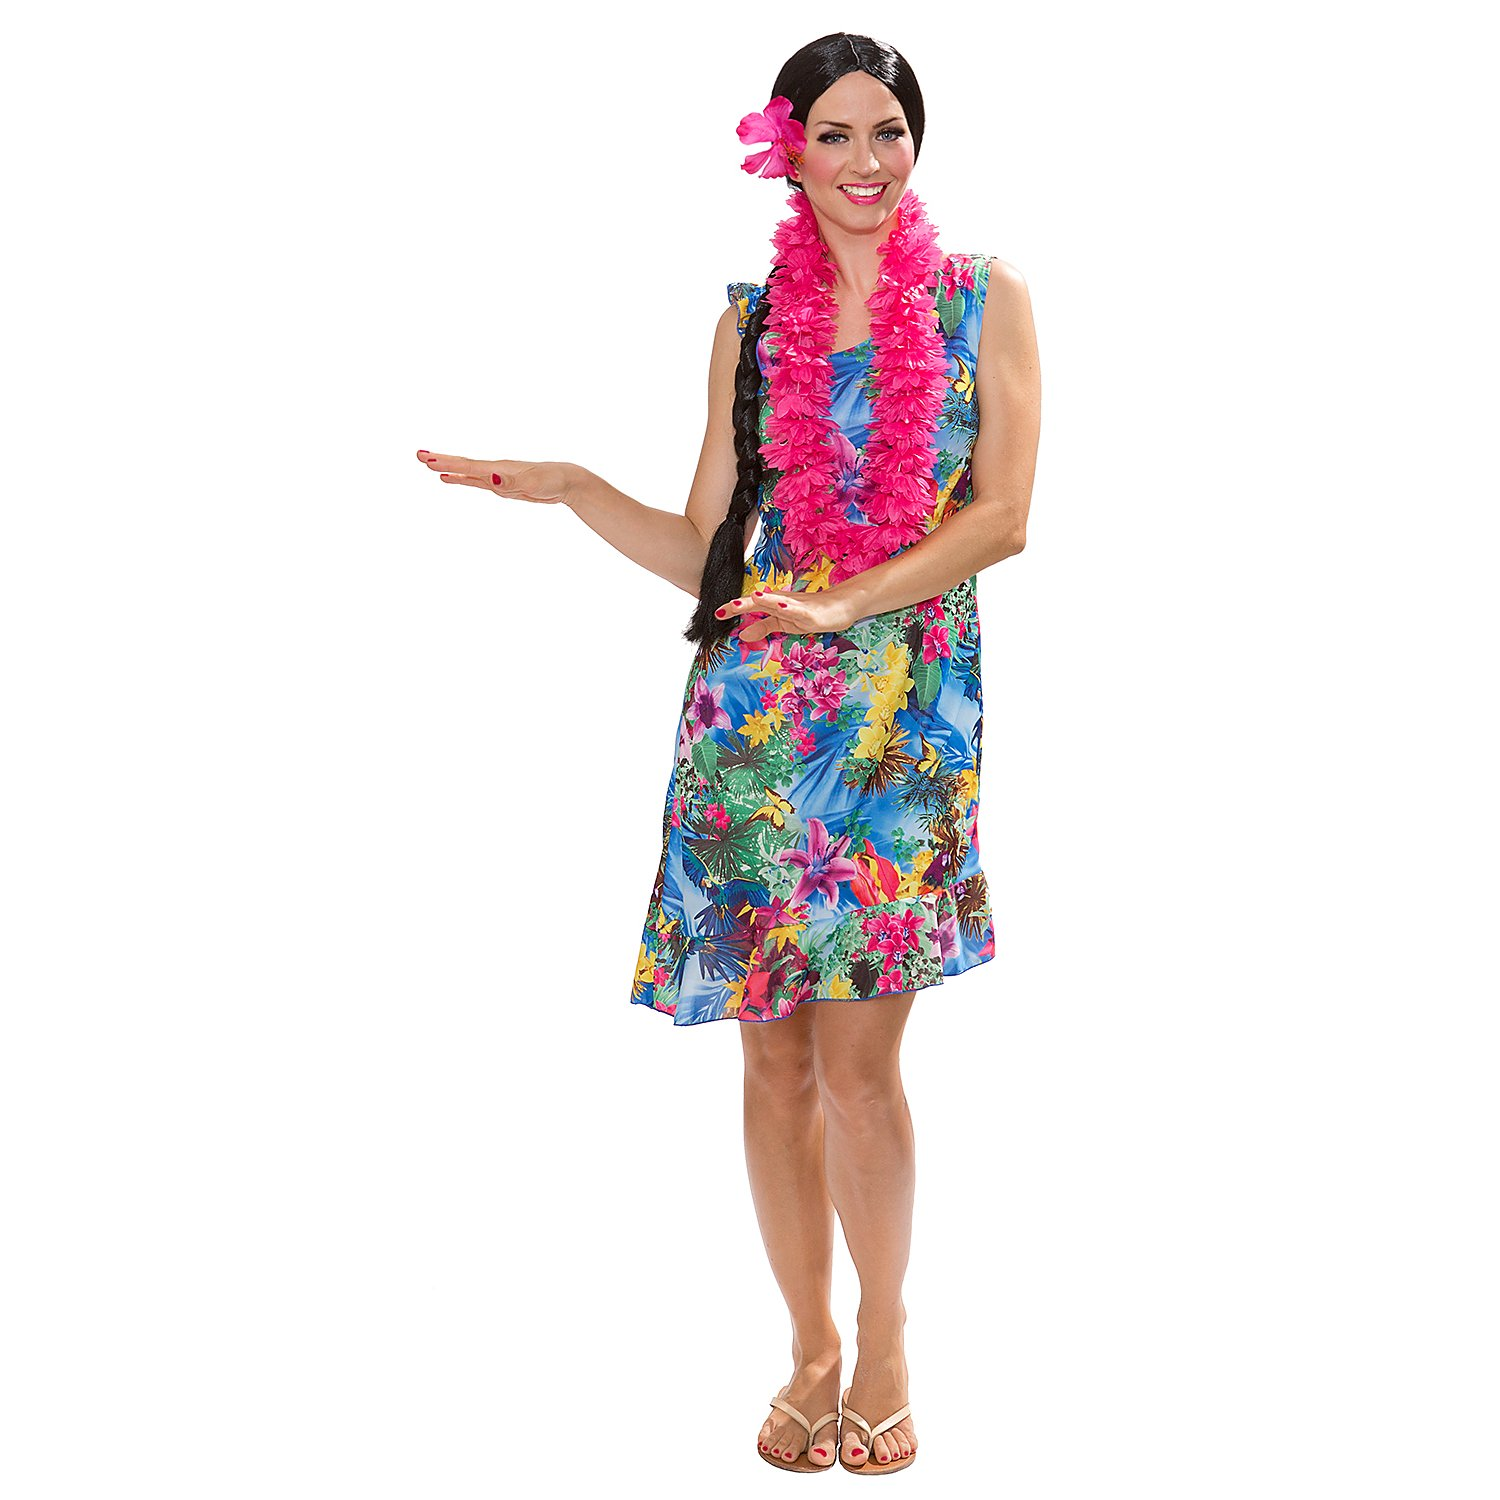 Hawaii Kleid online kaufen | buttinette Karneval Shop